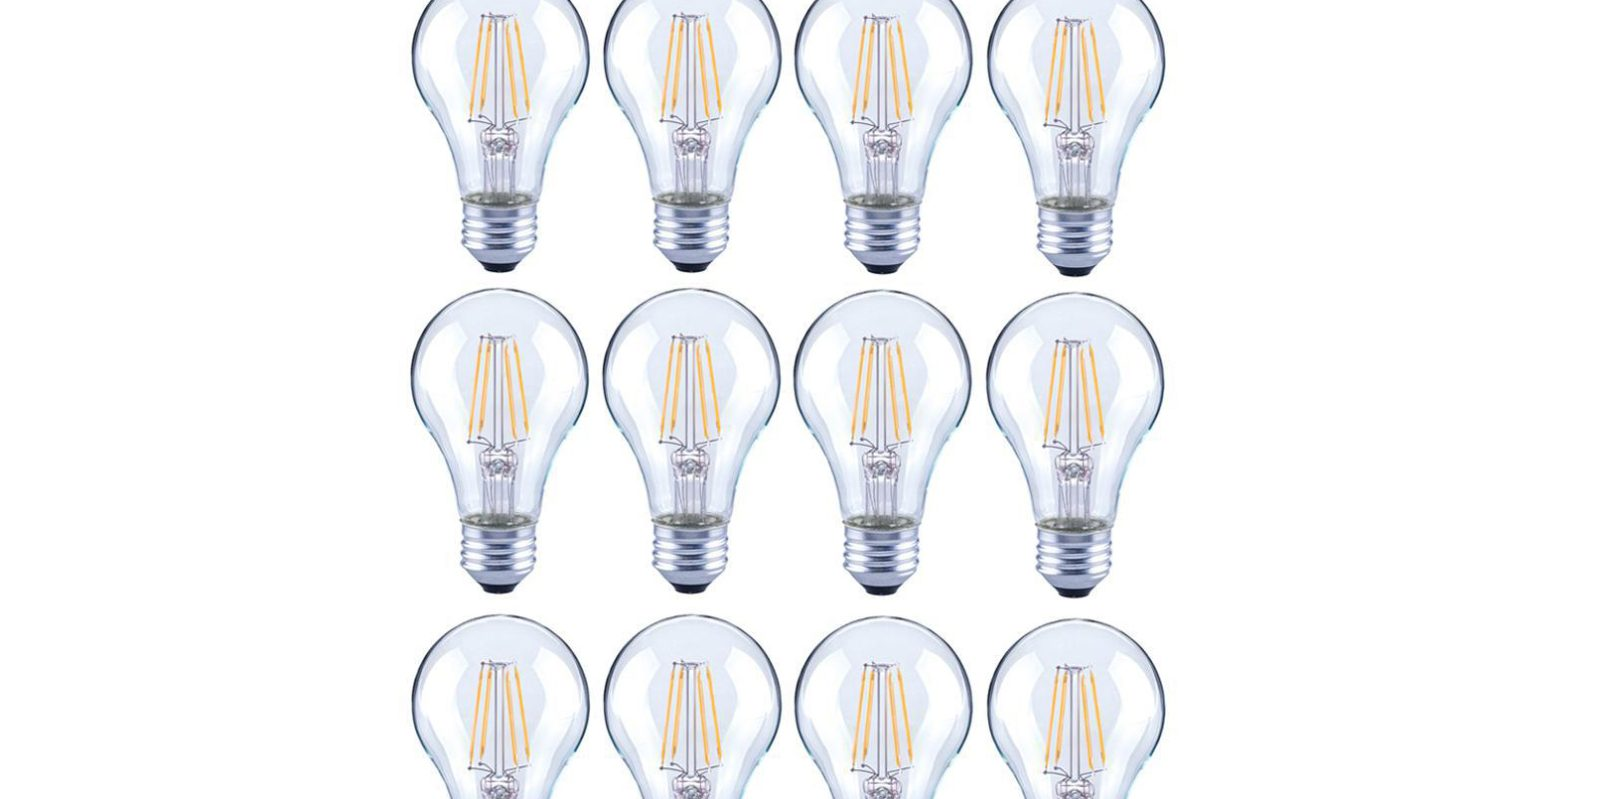 Pick up 12 dimmable LED light bulbs for $11 in today's Green Deals, more